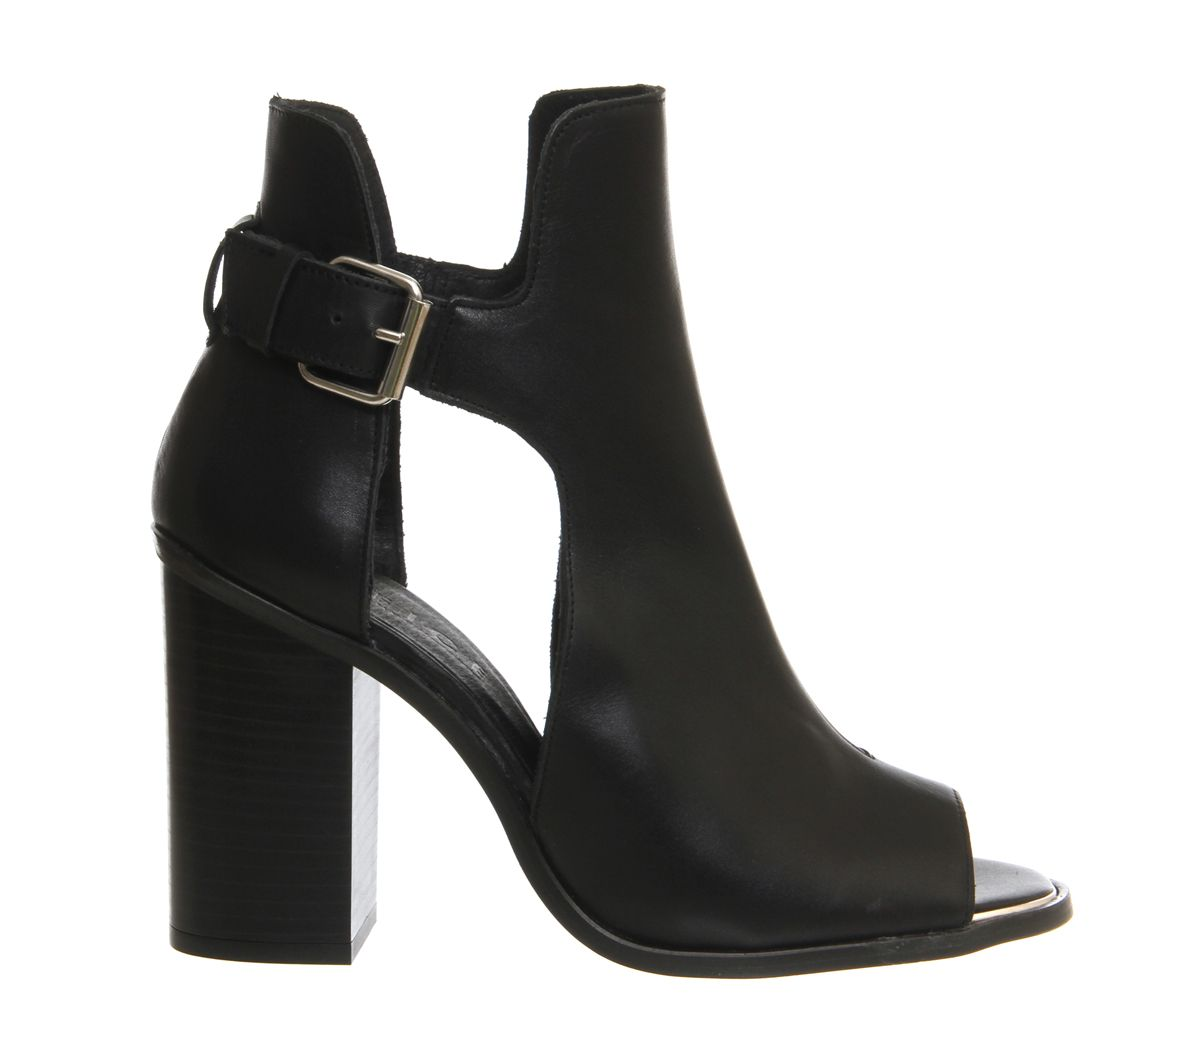 Office Frisk Cut Out Block Heel Boot Black Leather - Ankle Boots